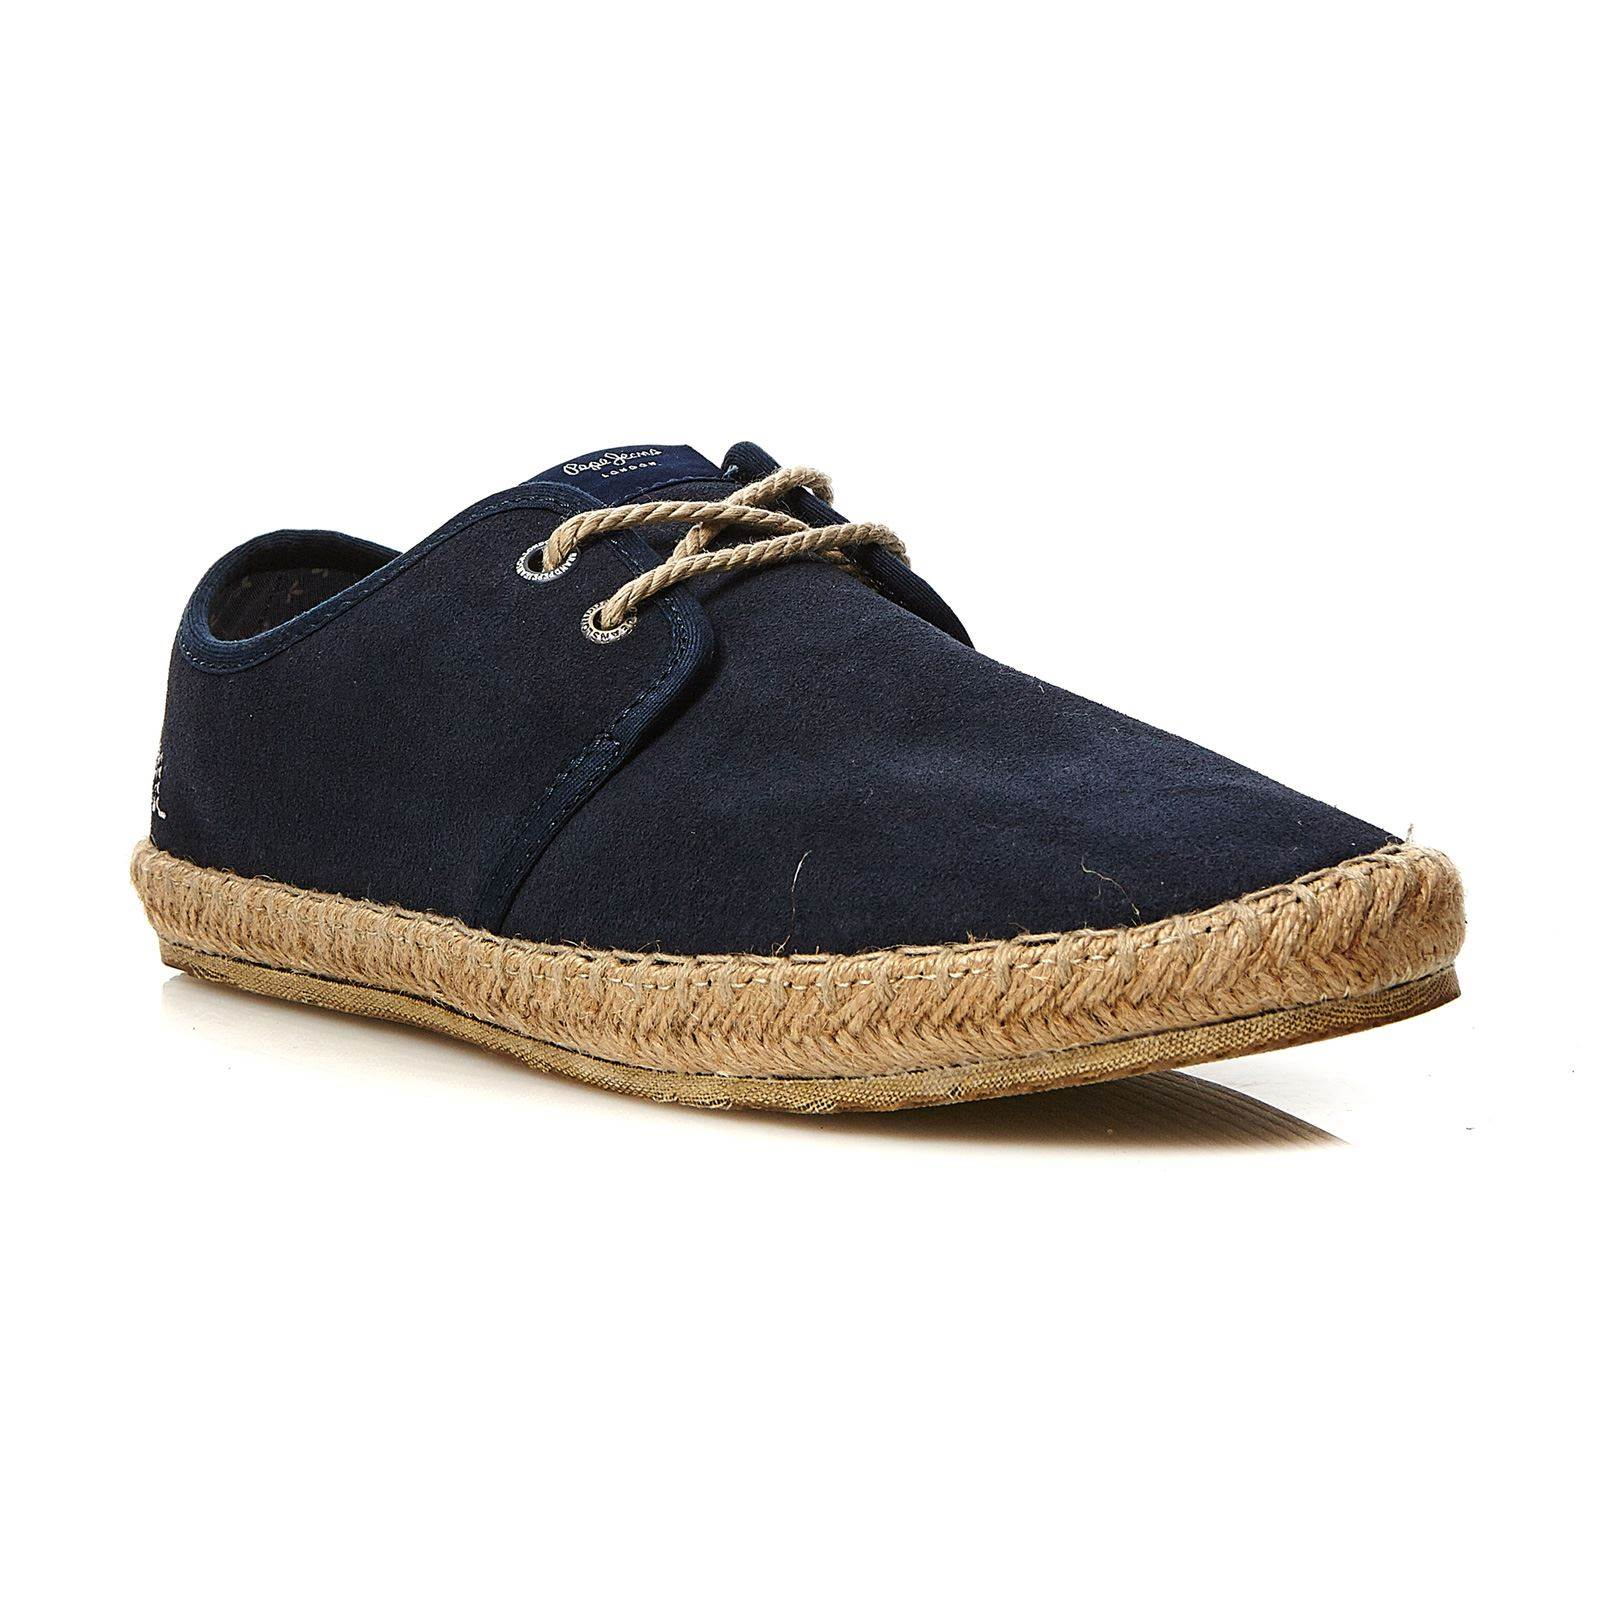 Pepe Jeans Footwear Tourist Basic 4.0 - Baskets - bleu marine